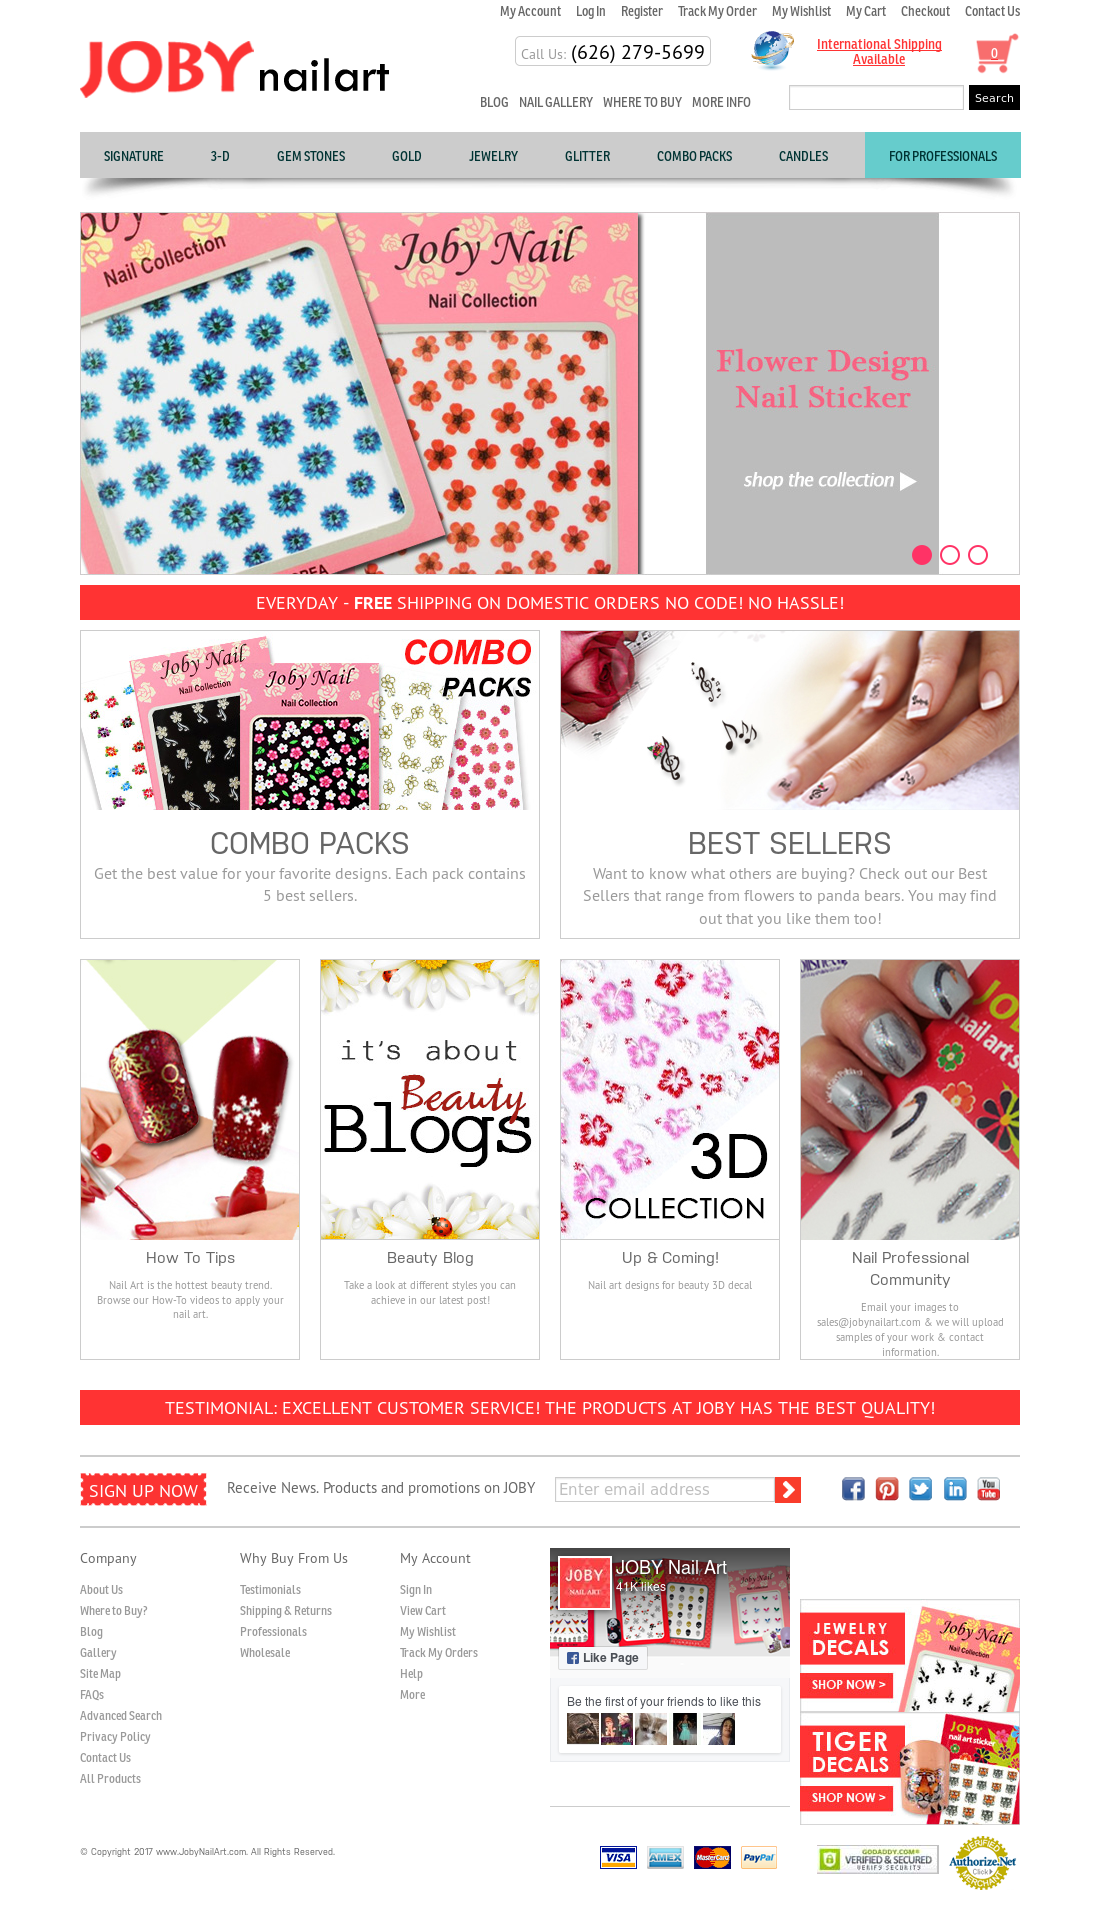 Joby Nail Art Competitors, Revenue and Employees - Owler Company Profile